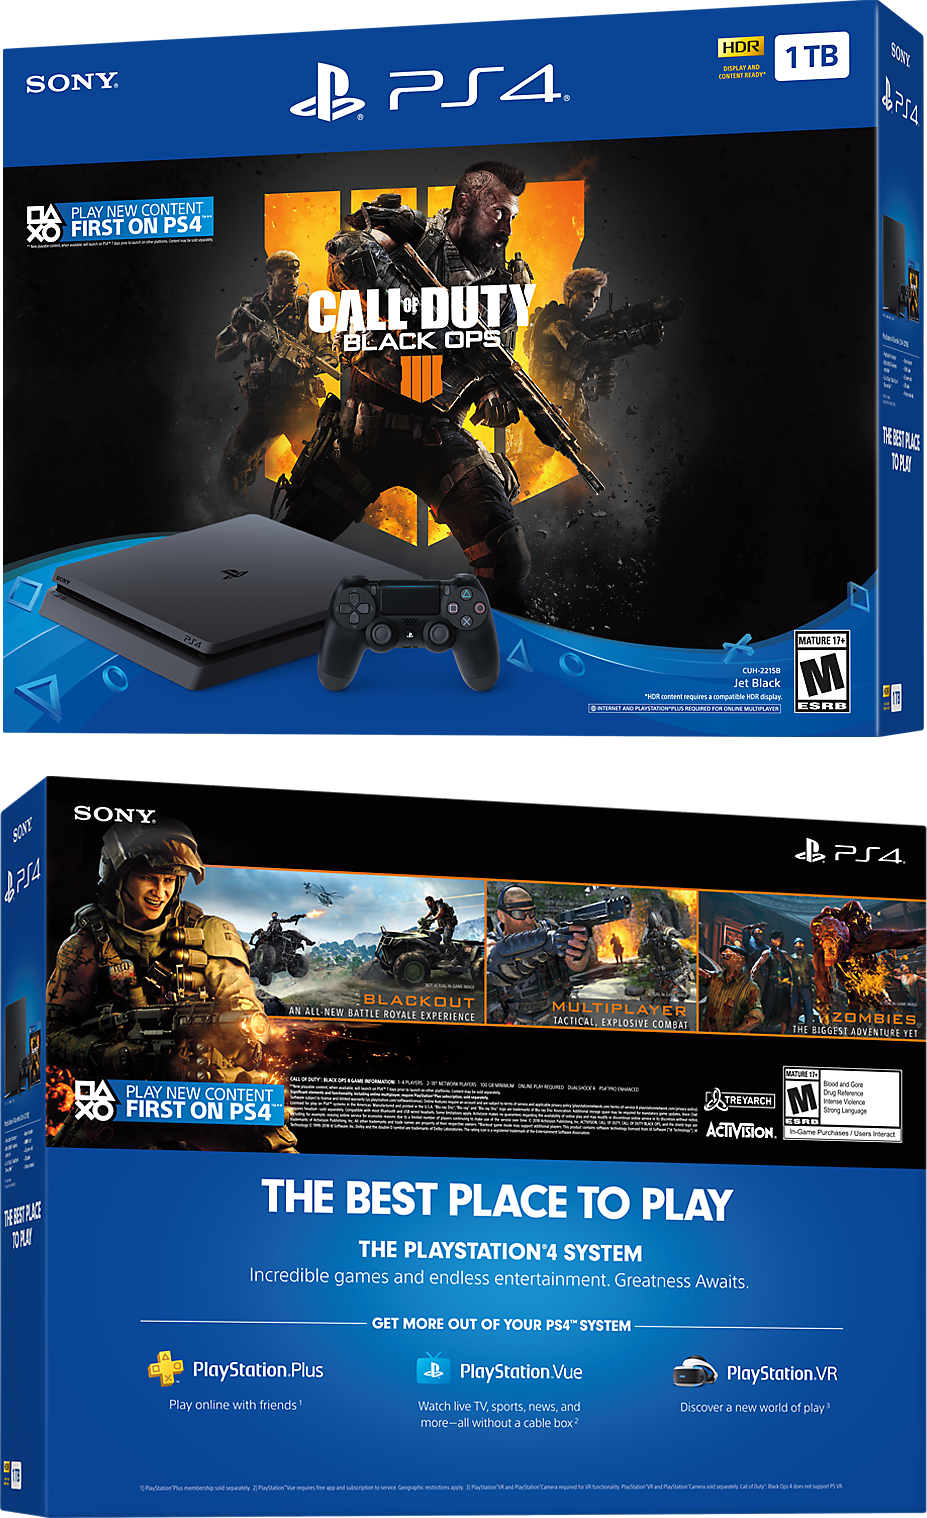 Call of Duty: Black Ops 4 PlayStation 4 Bundle Box Shots